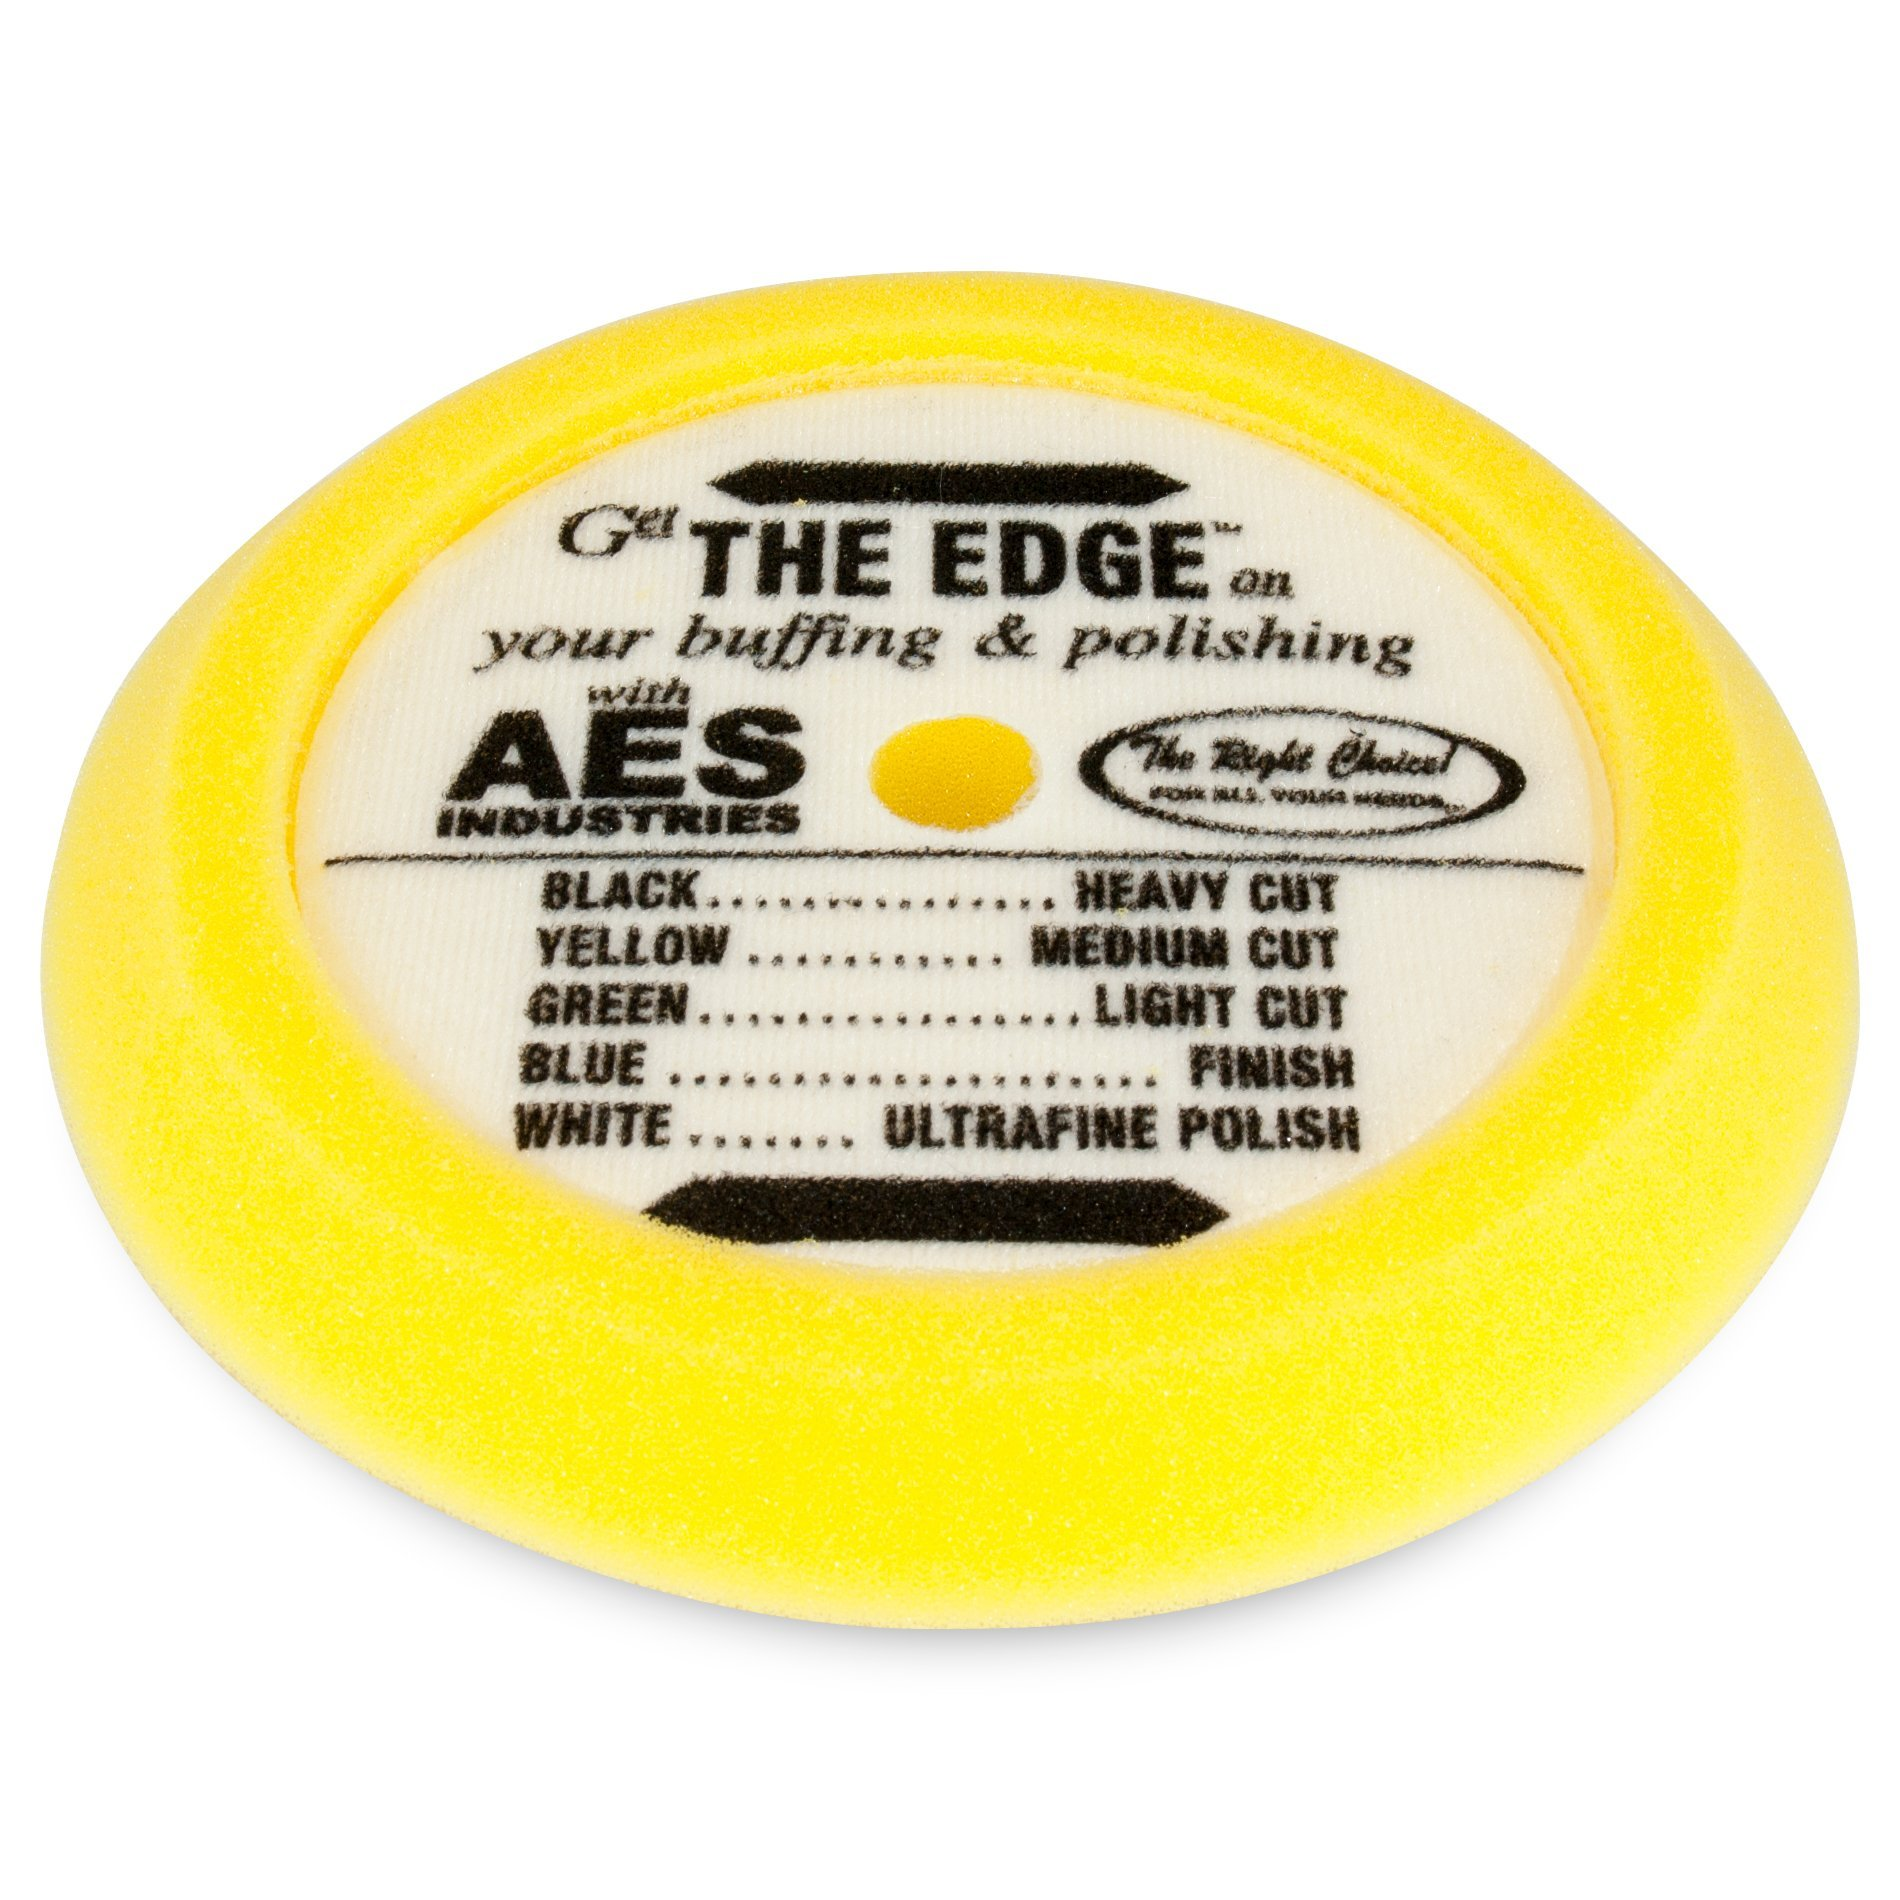 AES Industries 51735 The Edge 9.25'' Medium-Heavy Cutting Pad - Yellow (Hook and Loop) Made in USA by AES Industries